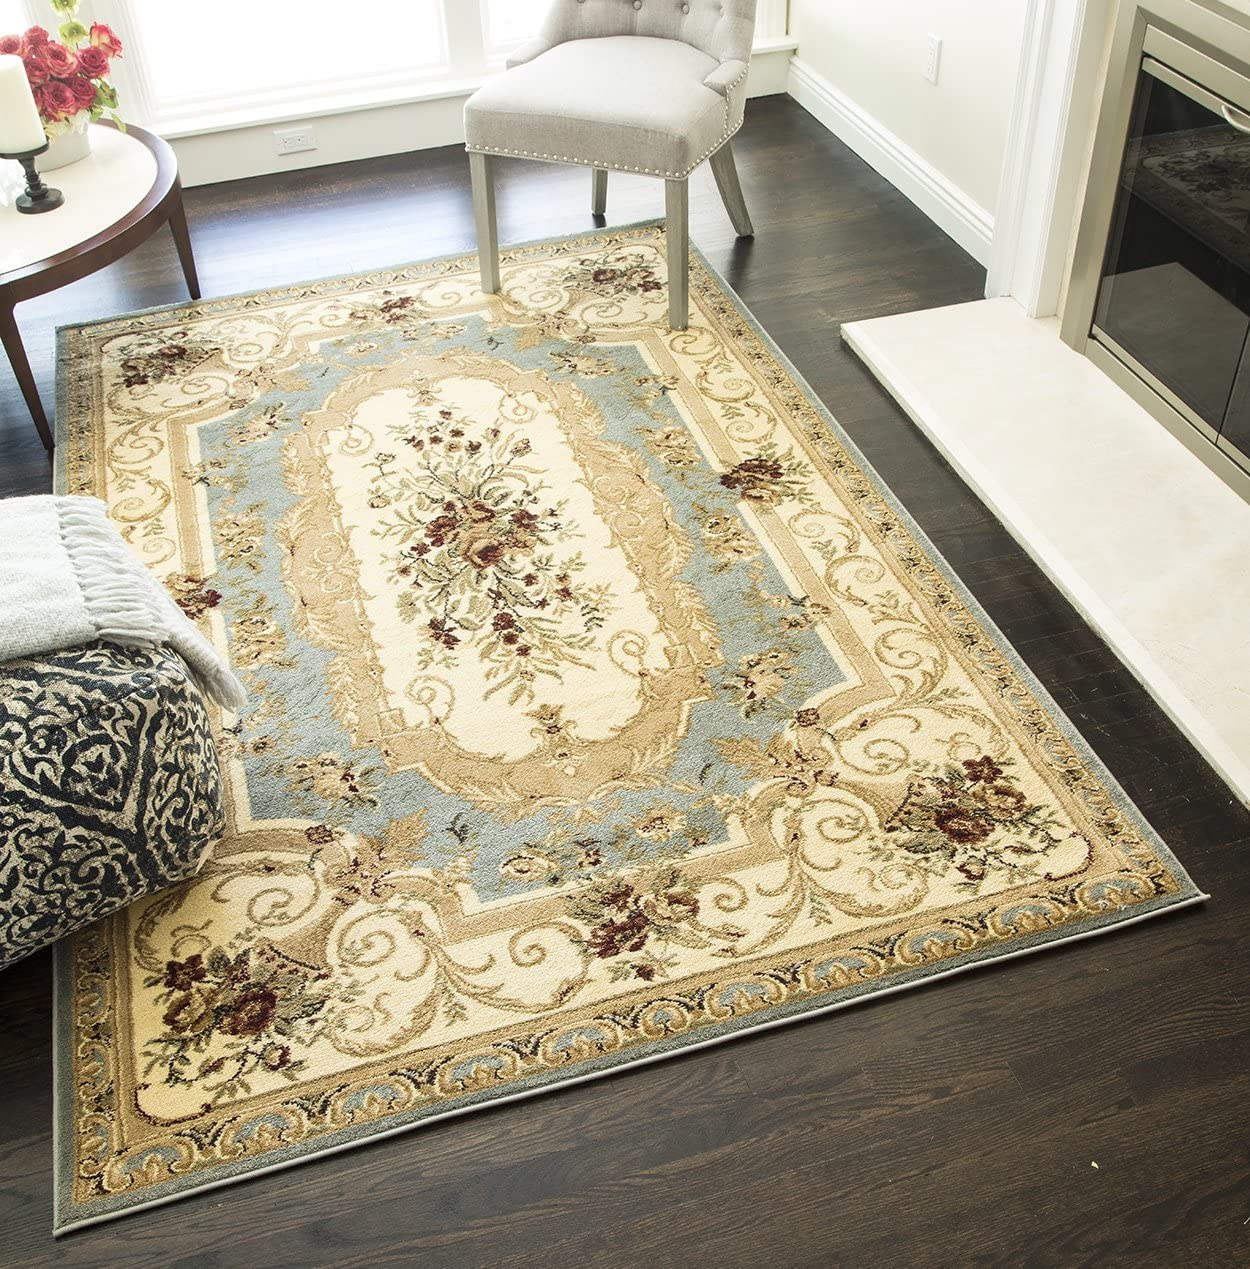 Rugs America security Sorrento Area Rug 5-Feet 3-Inch by 10-Inch NEW before selling 7-Feet